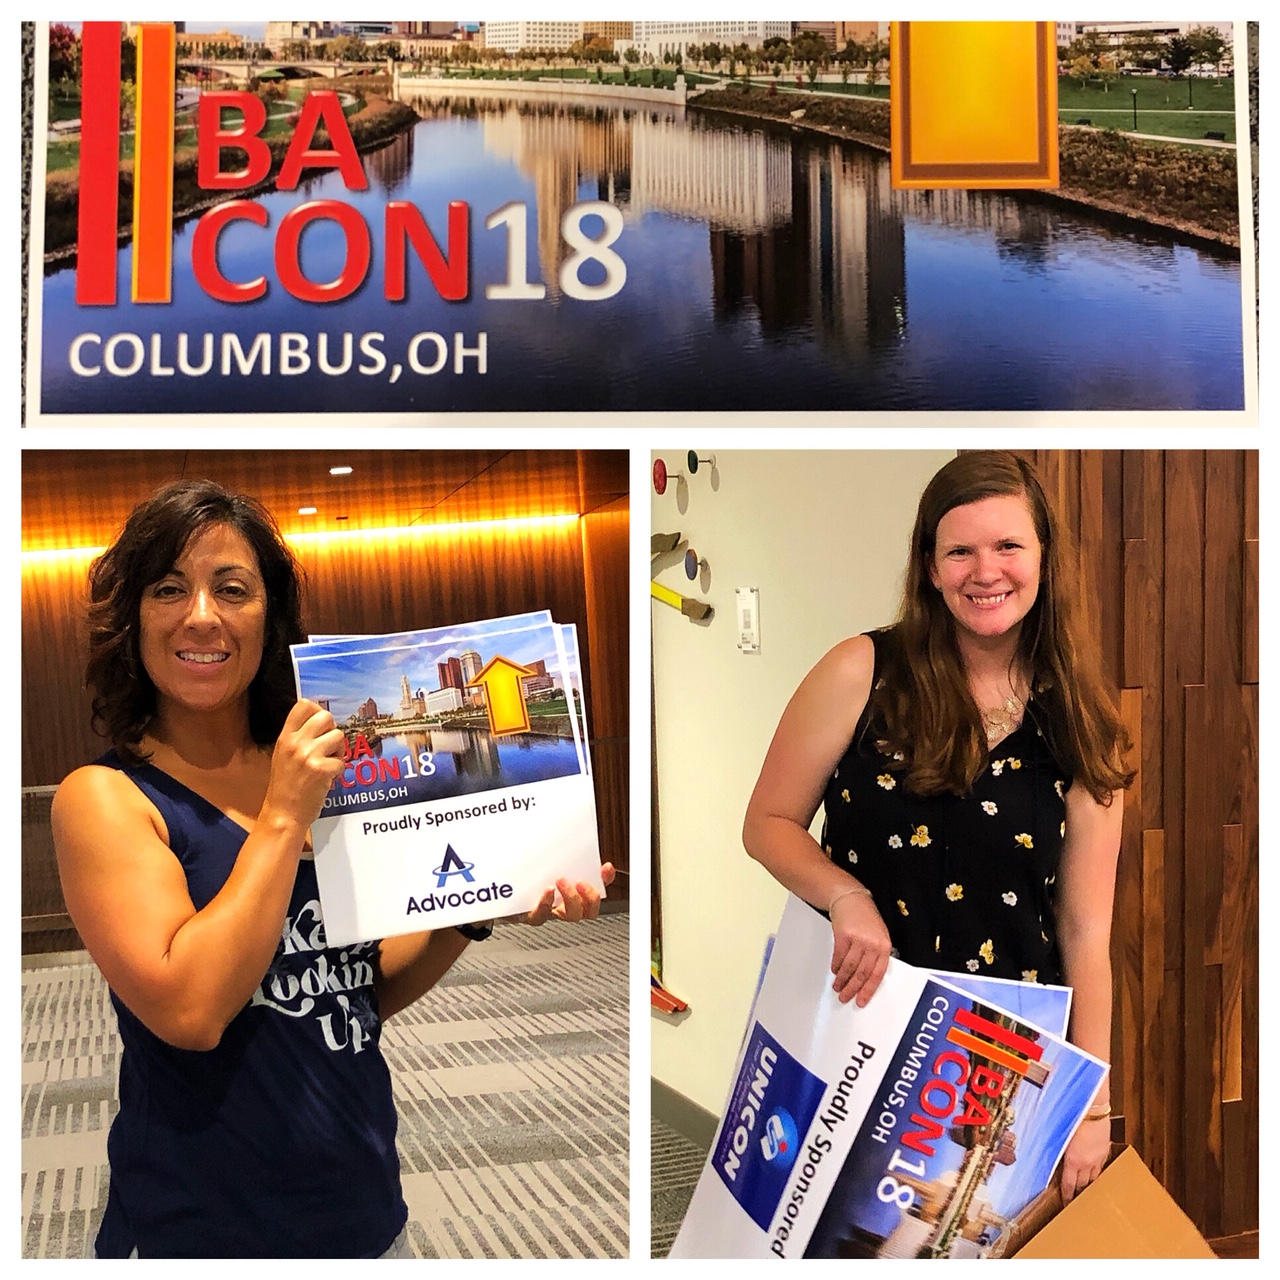 Breakout Sponsor - • 5 available sponsorships• Breakout room sponsor• All SUPPORTER benefits plus:• Booth outside sponsored breakout room (in place of sponsor room)• 1 additional complimentary registration• $2,750 for all day on Friday, August 23rd